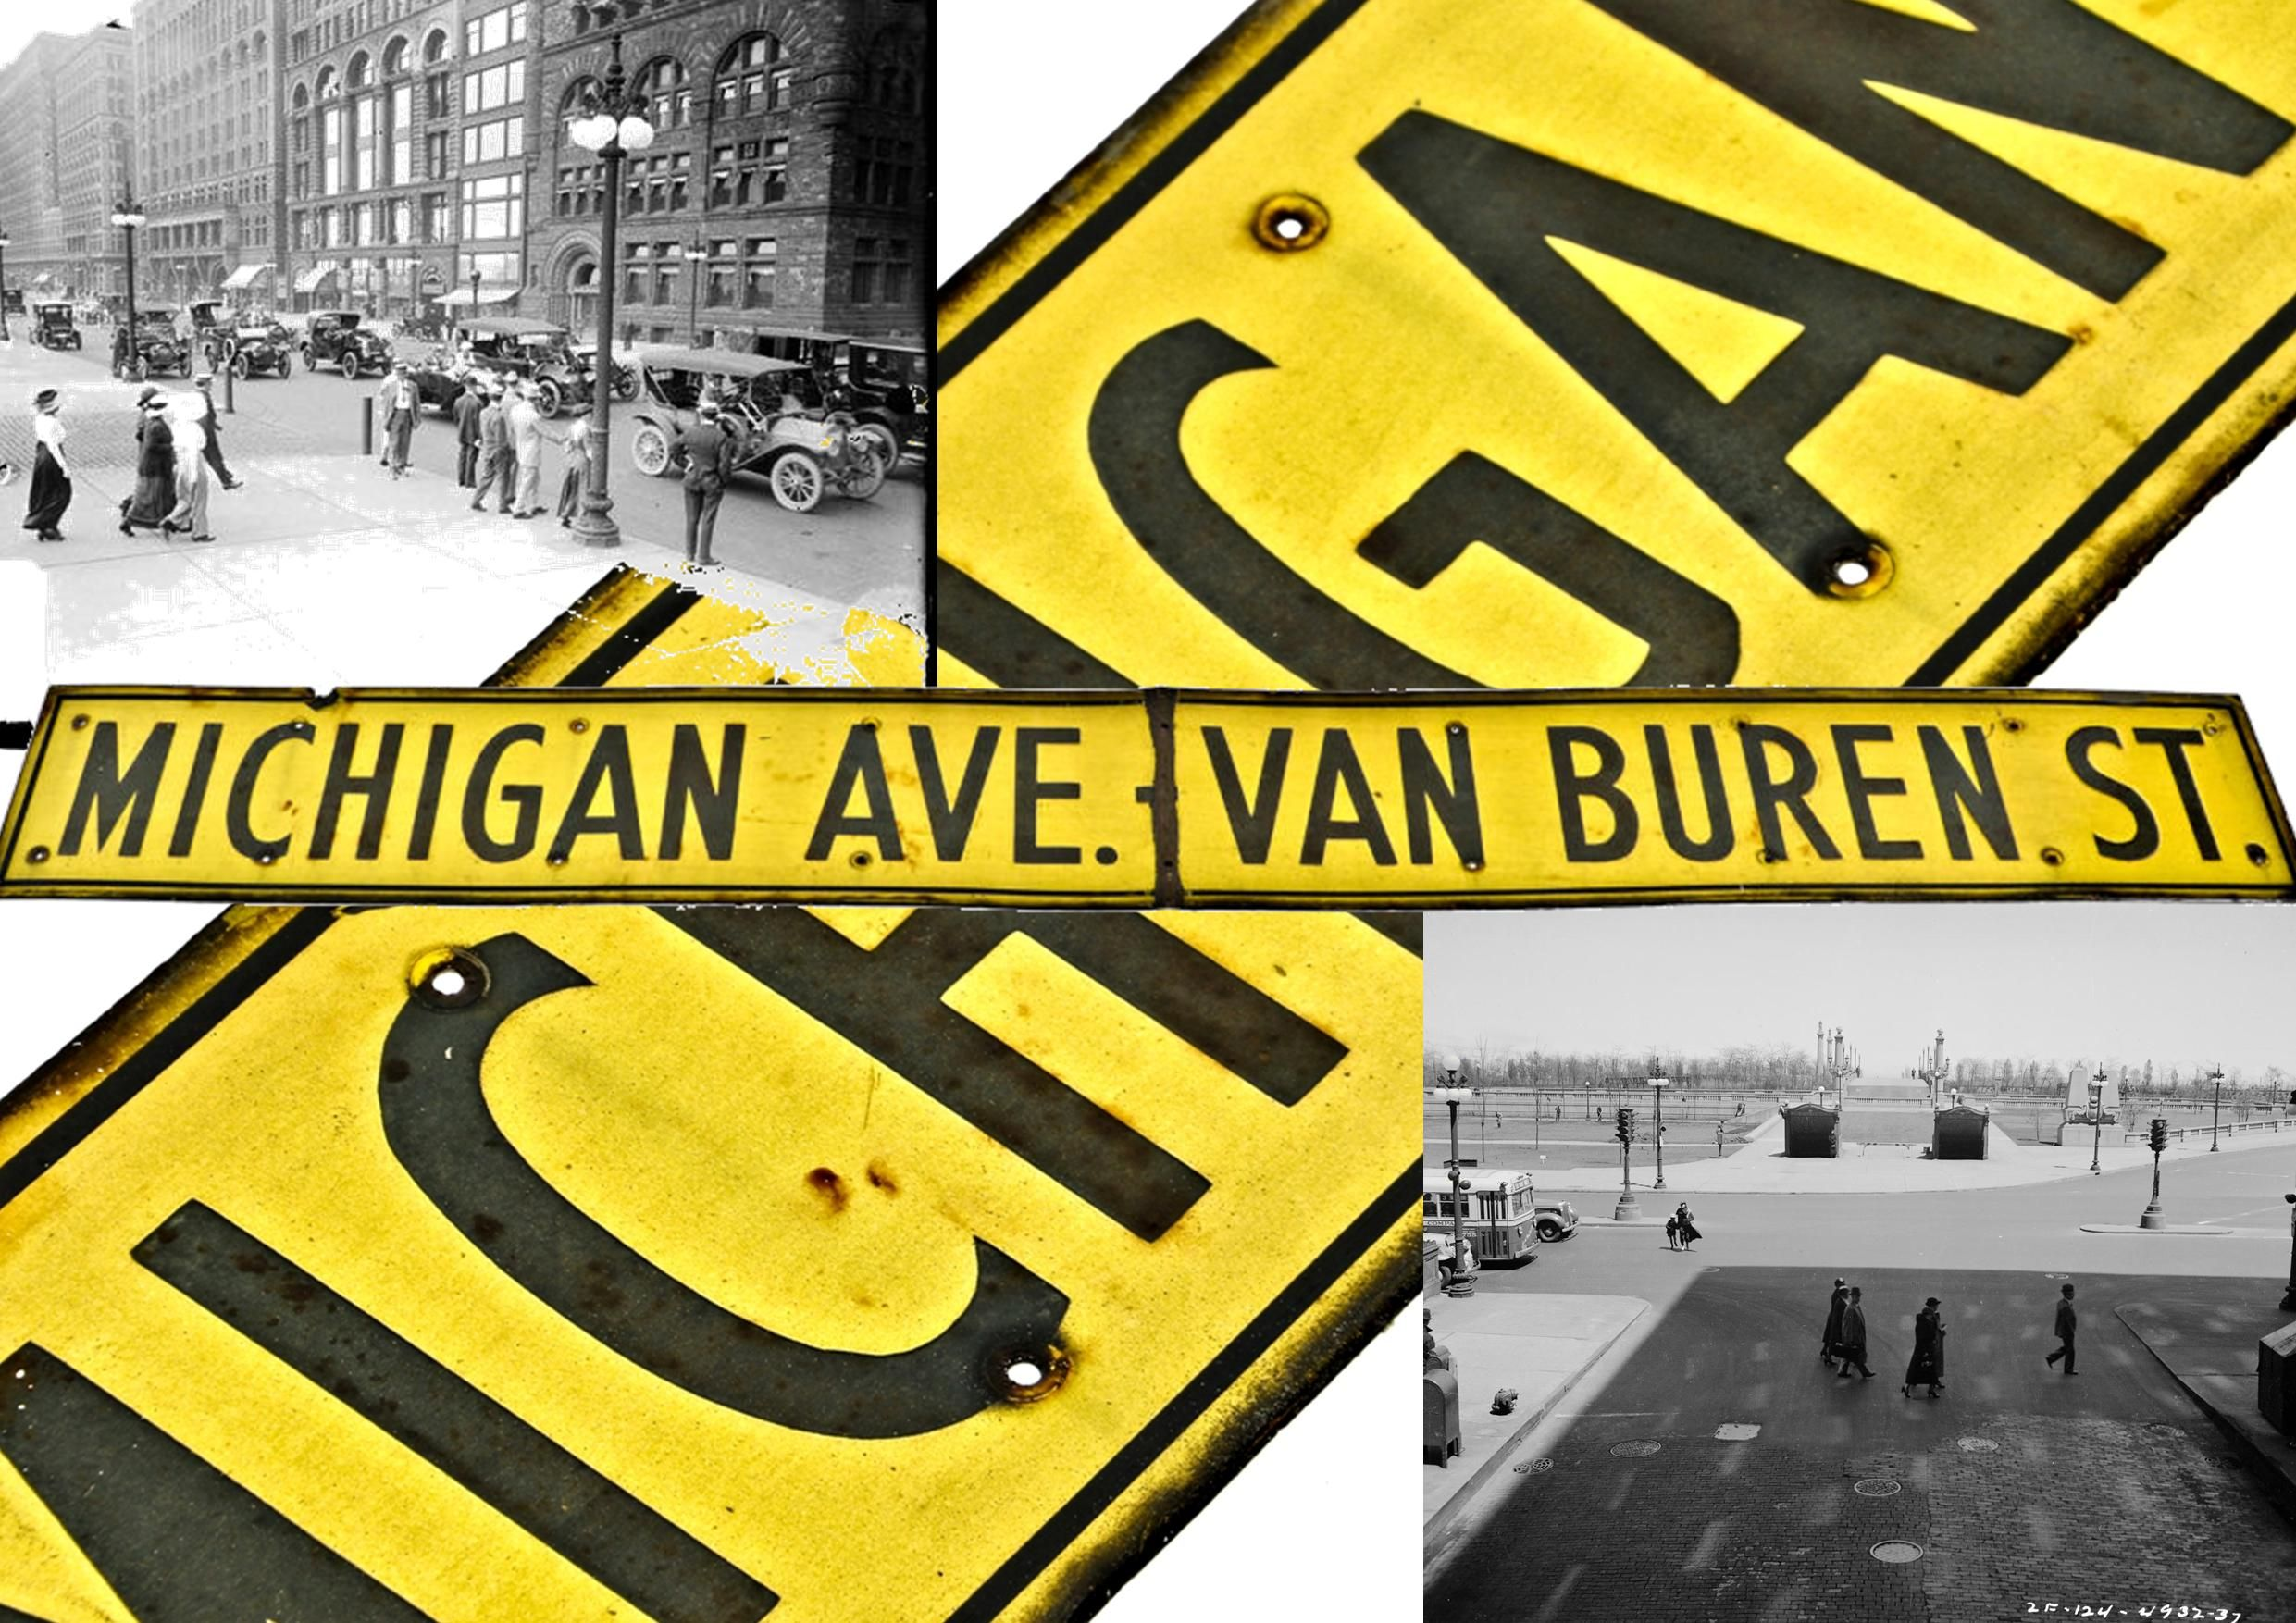 Old Downtown Chicago Street Sign Sheds Light On The Corner Of